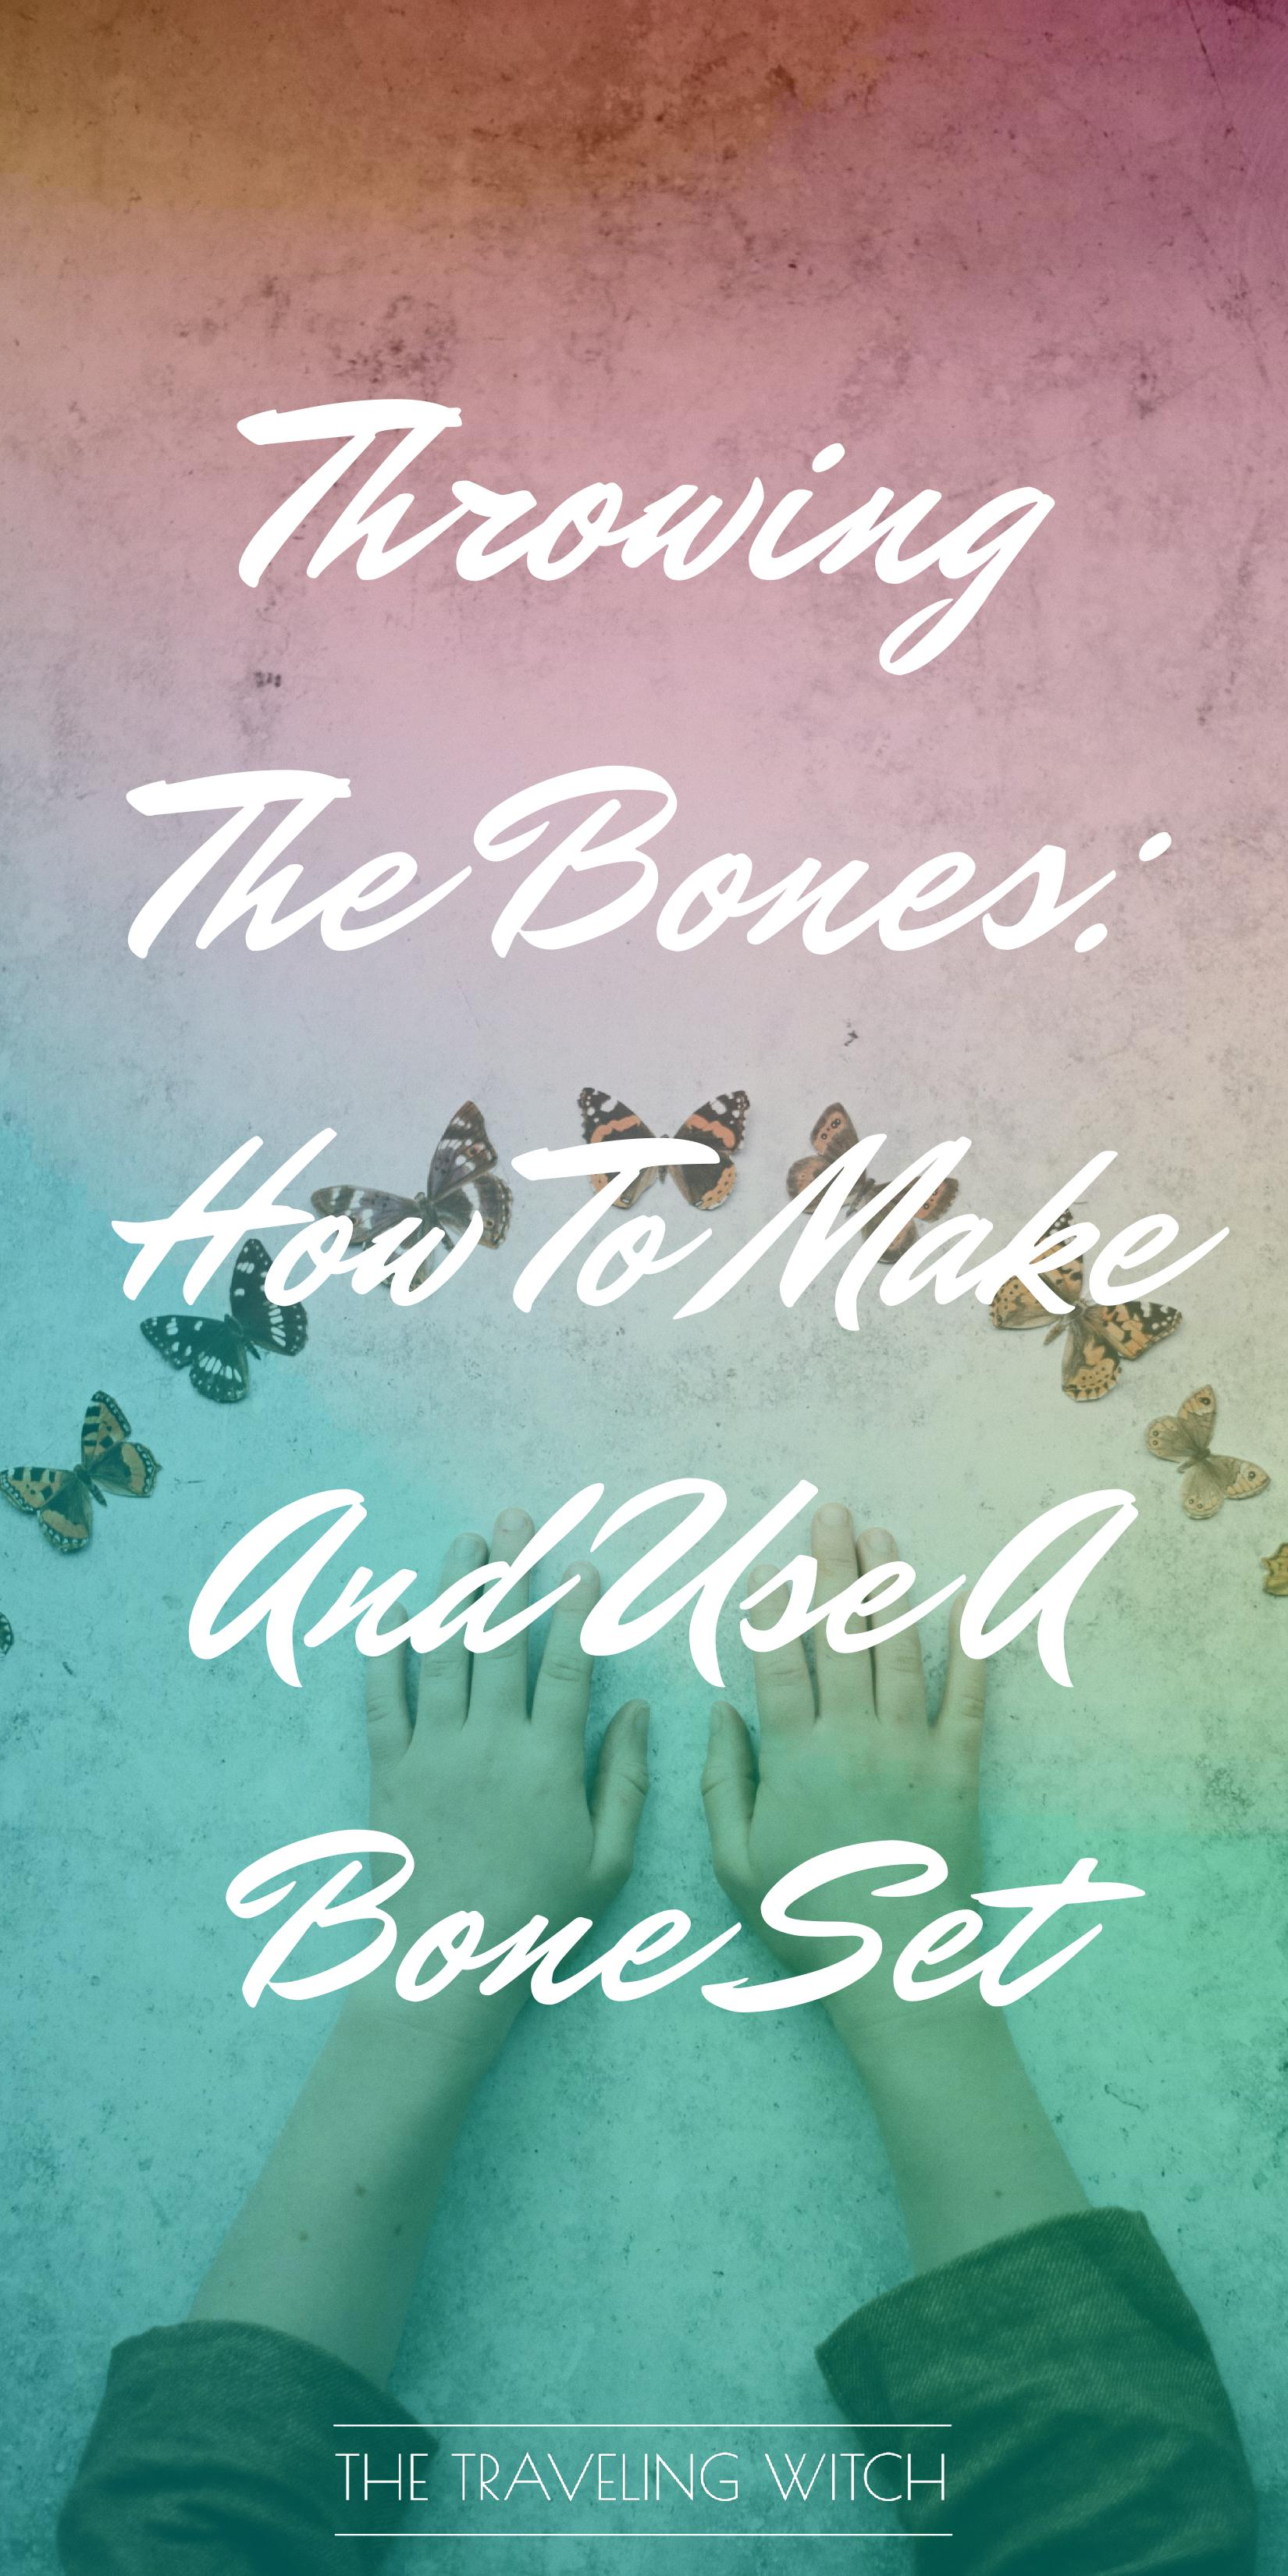 Throwing The Bones: How To Make And Use A Bone Set // Witchcraft // Magic // The Traveling Witch